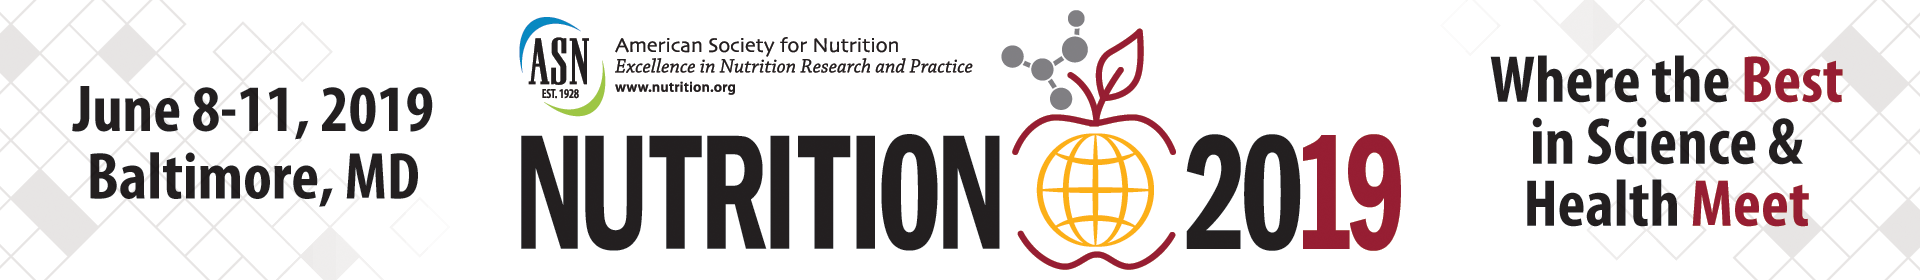 Nutrition 2019 Event Banner